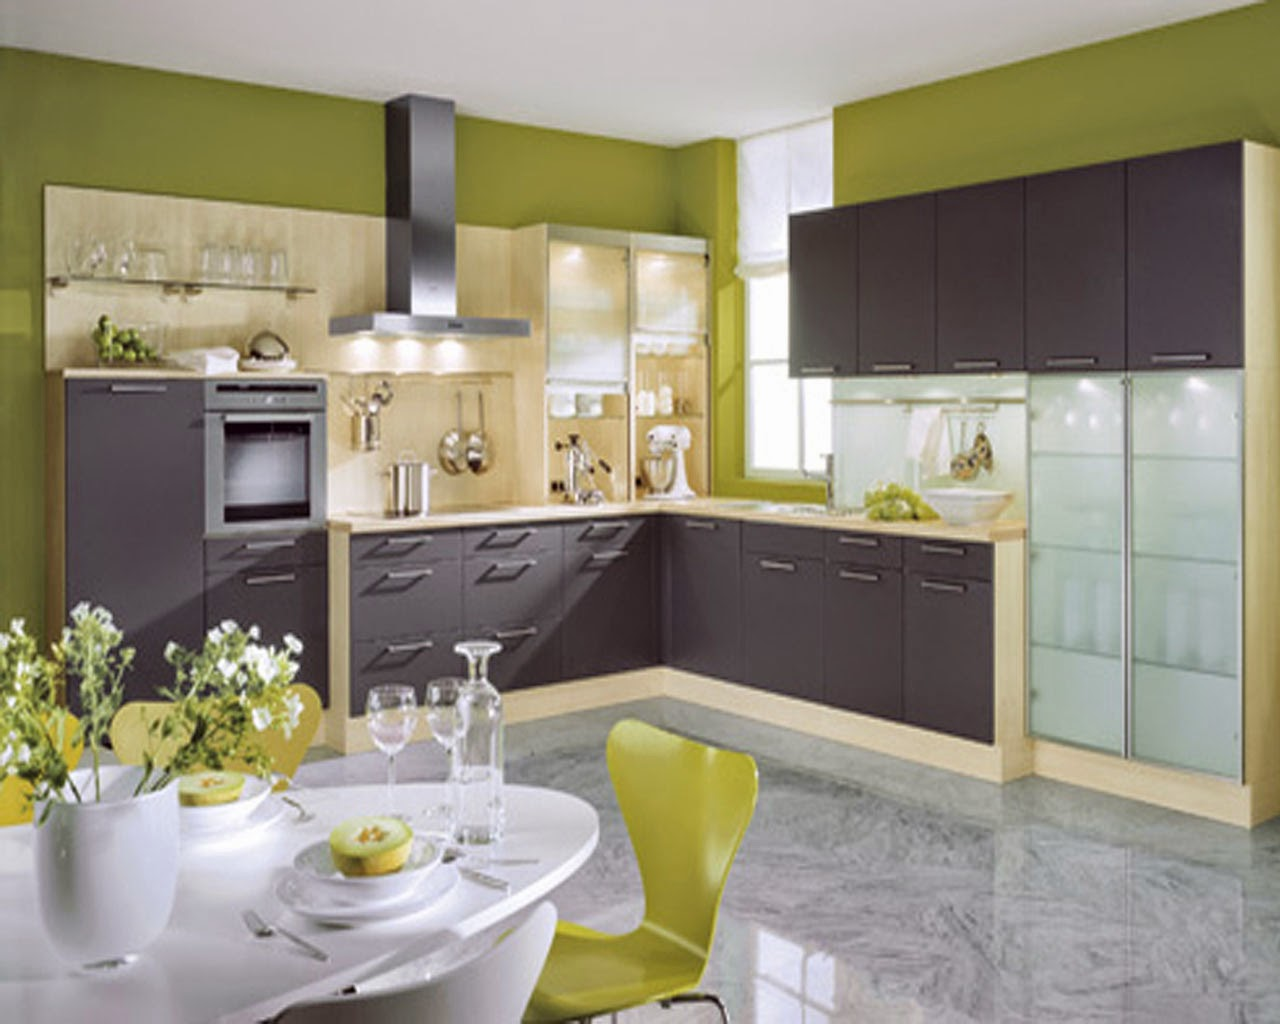 kitchen designing ideas 2014 freshnist design On best kitchen designs